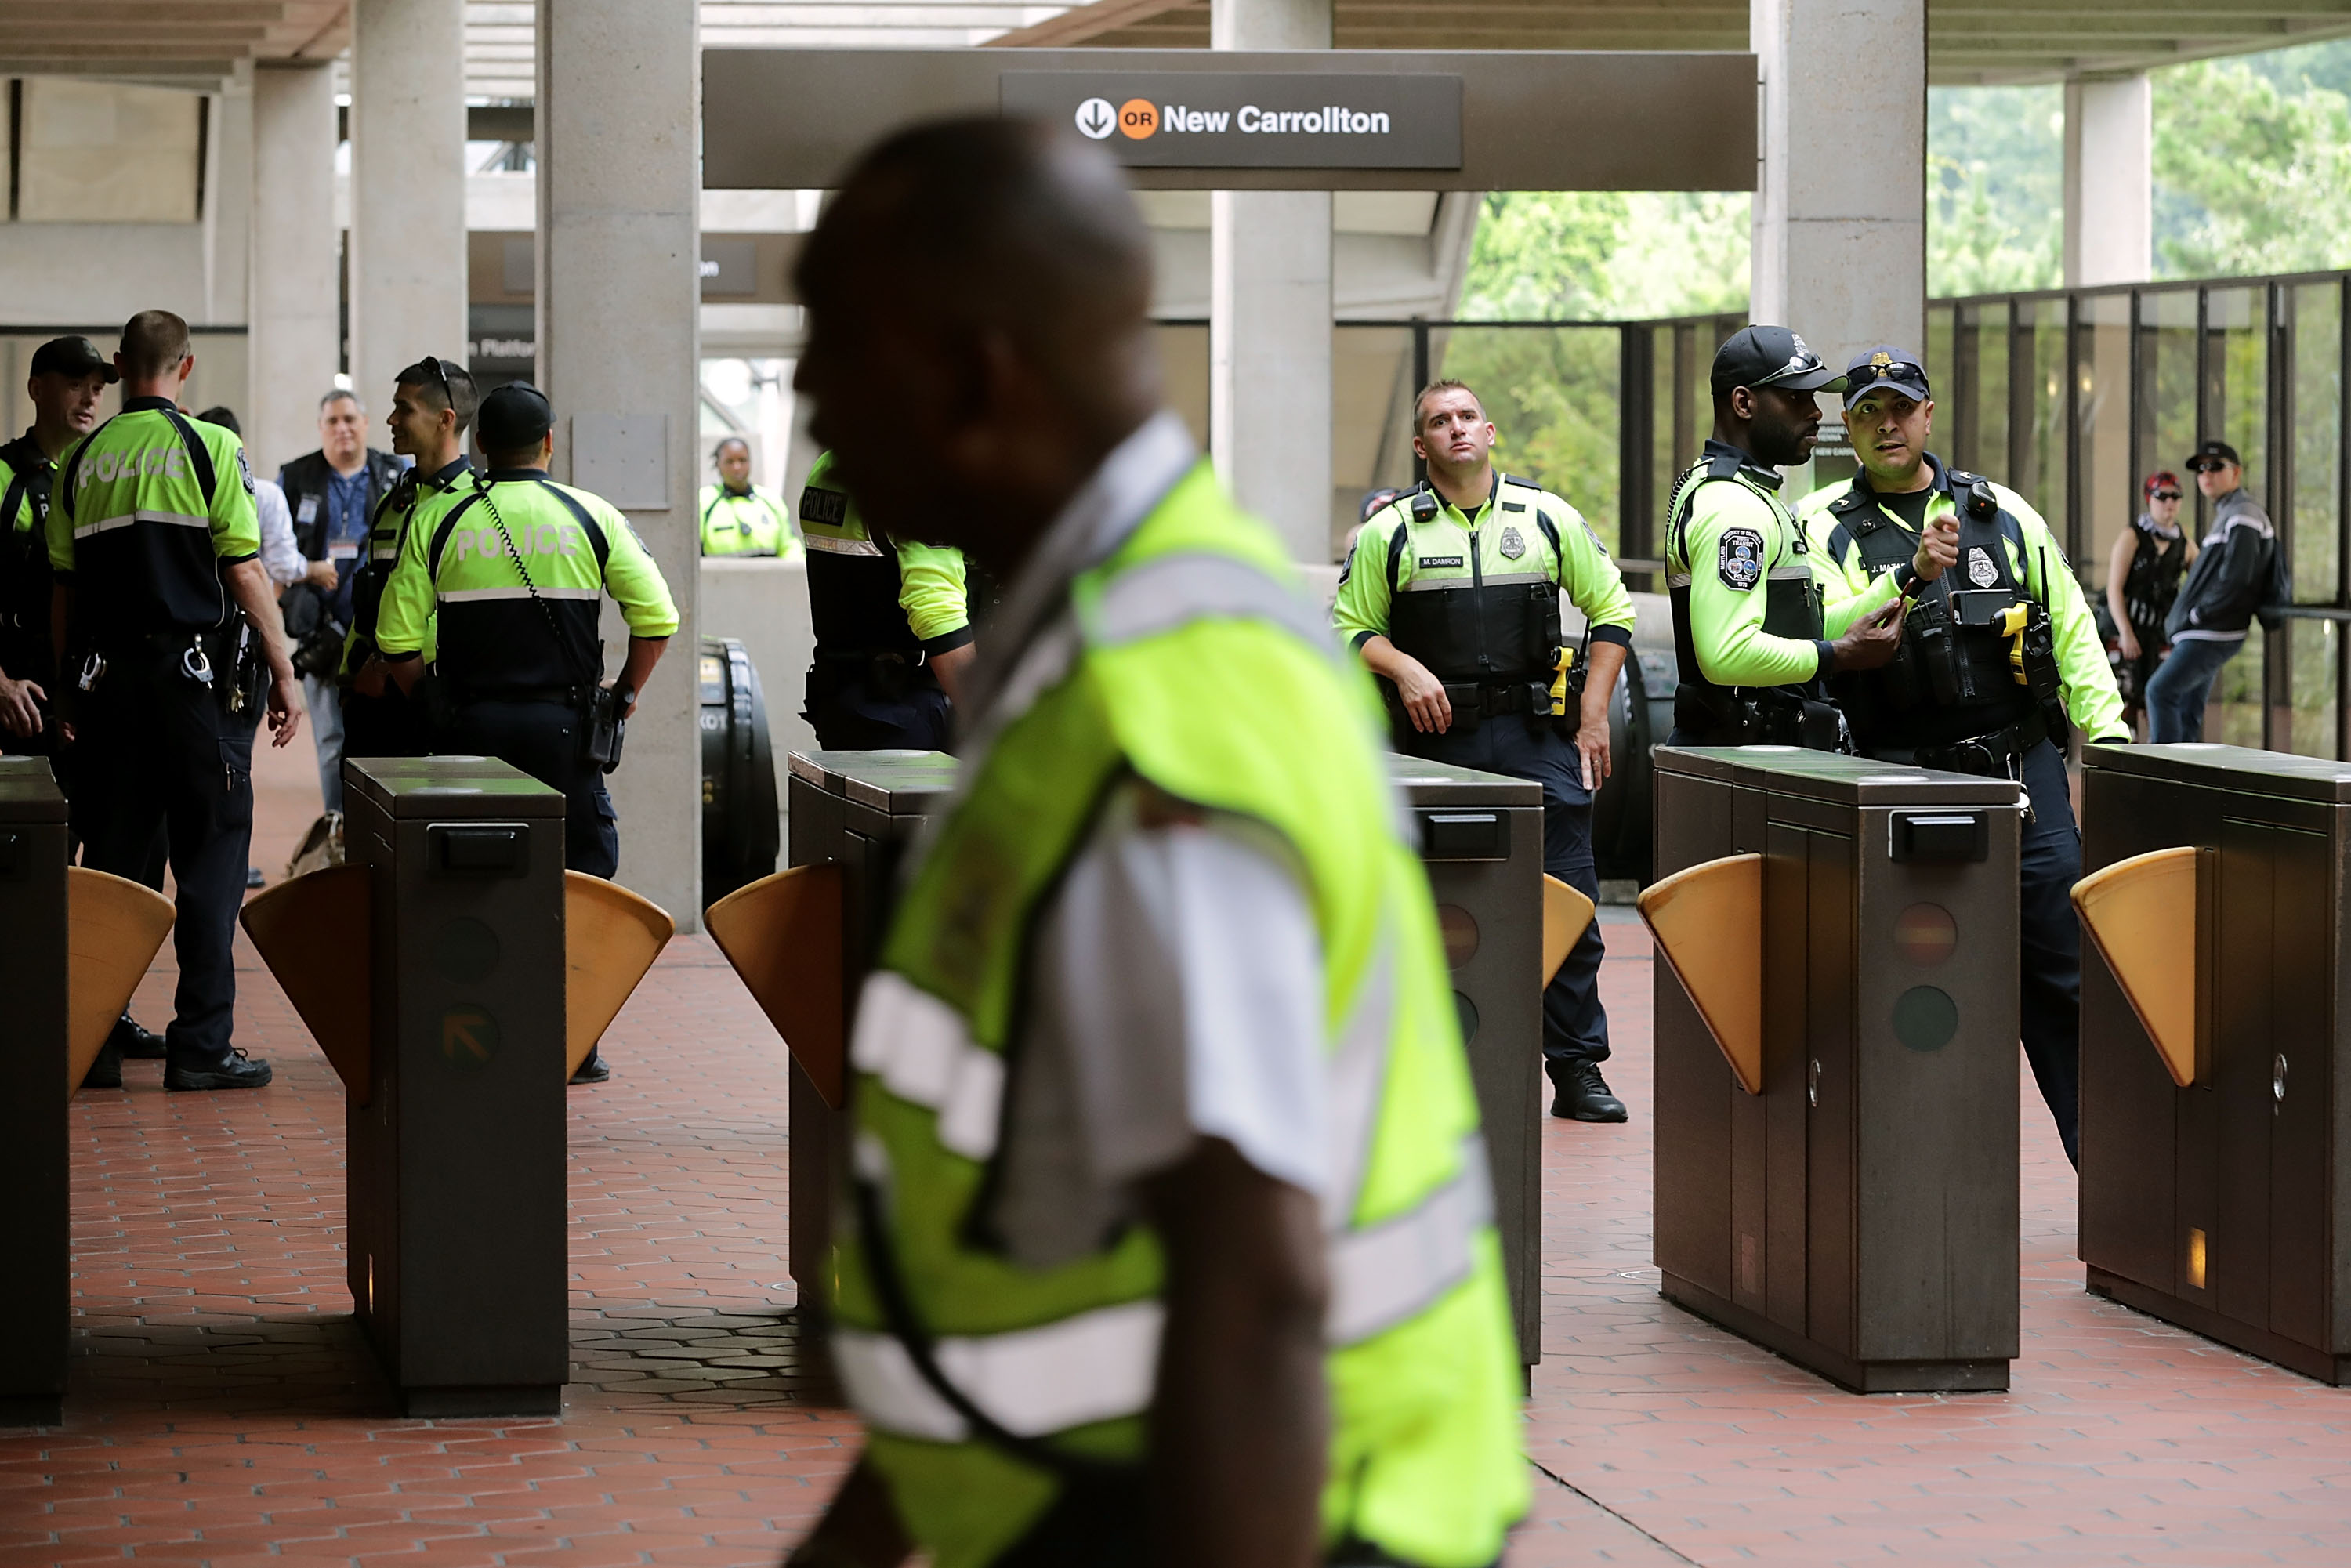 VIENNA, VA - AUGUST 12: Police stand watch at the Vienna/Fairfax GMU Metro Station in anticipation of the arrival of the white supremacist Unite the Right participants who plan to gather at the station before traveling to the White House August 12, 2018 in Vienna, Virginia. (Photo by Chip Somodevilla/Getty Images)